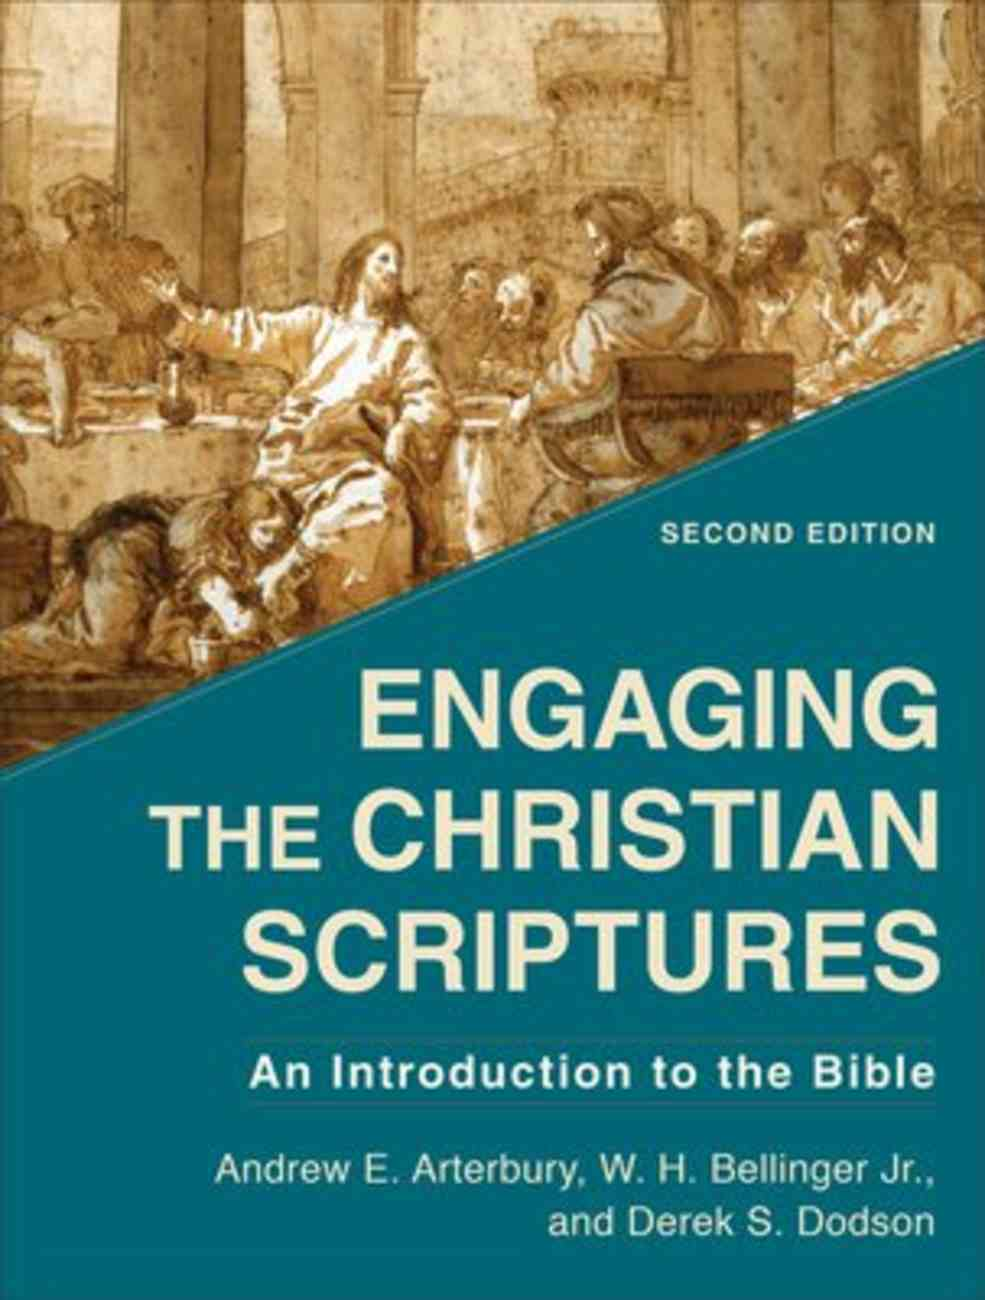 Engaging the Christian Scriptures: An Introduction to the Bible (2nd Edition) Paperback